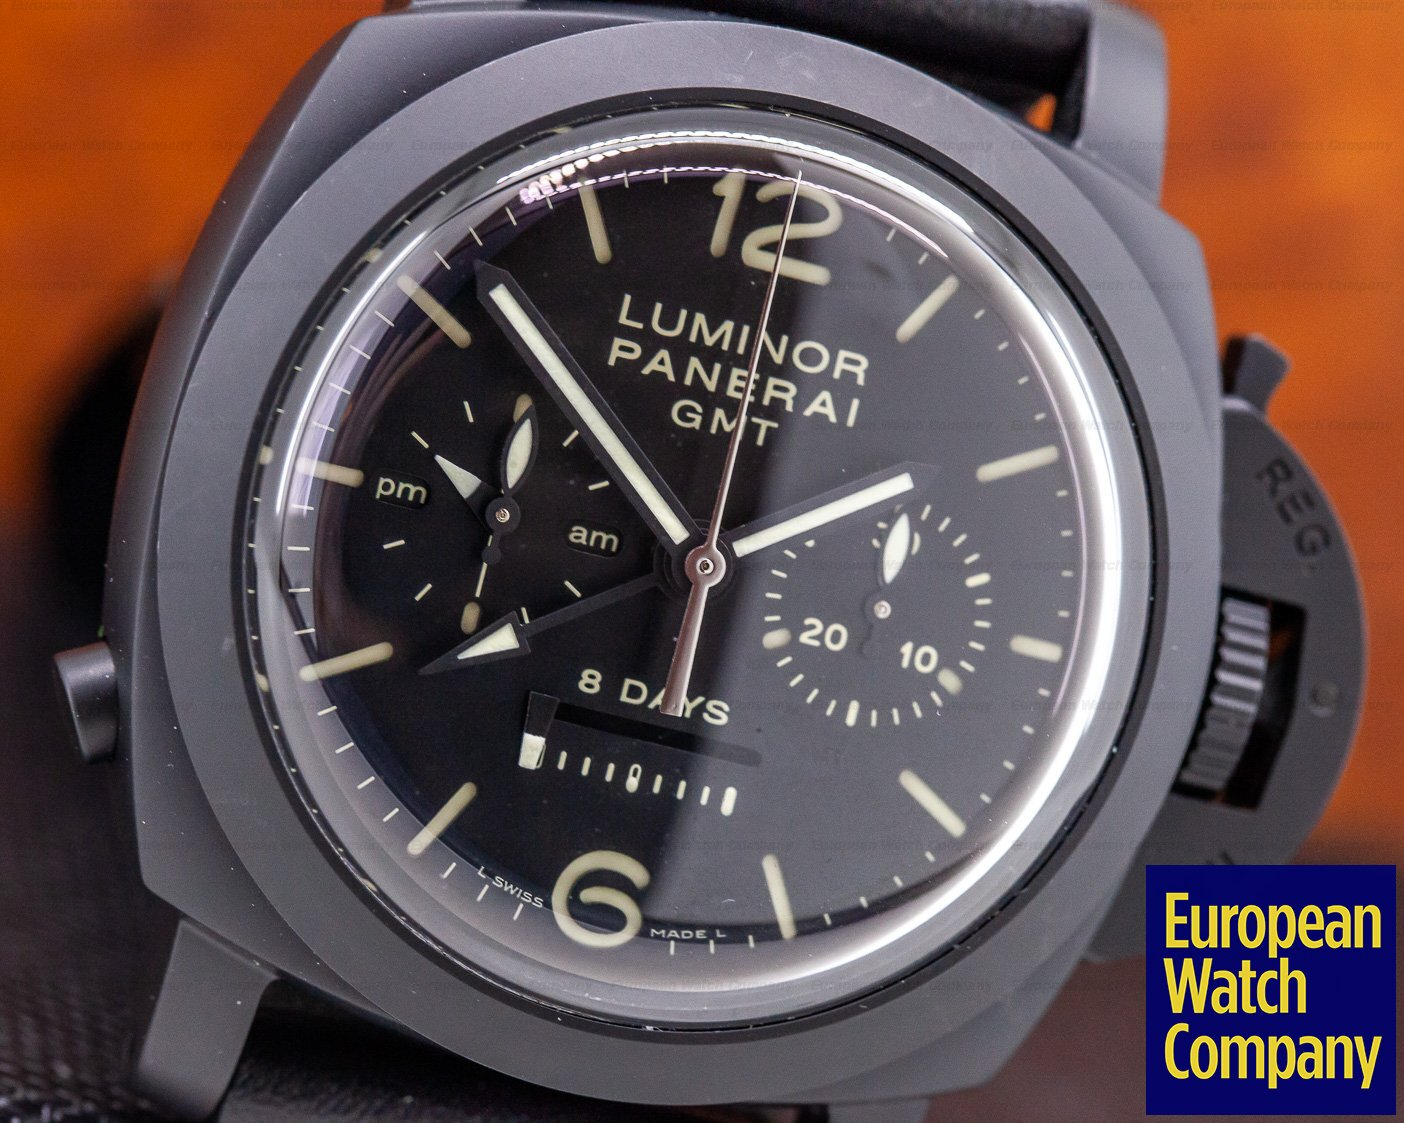 Panerai PAM00317 Luminor 1950 Chrono Monopulsante 8 Days GMT